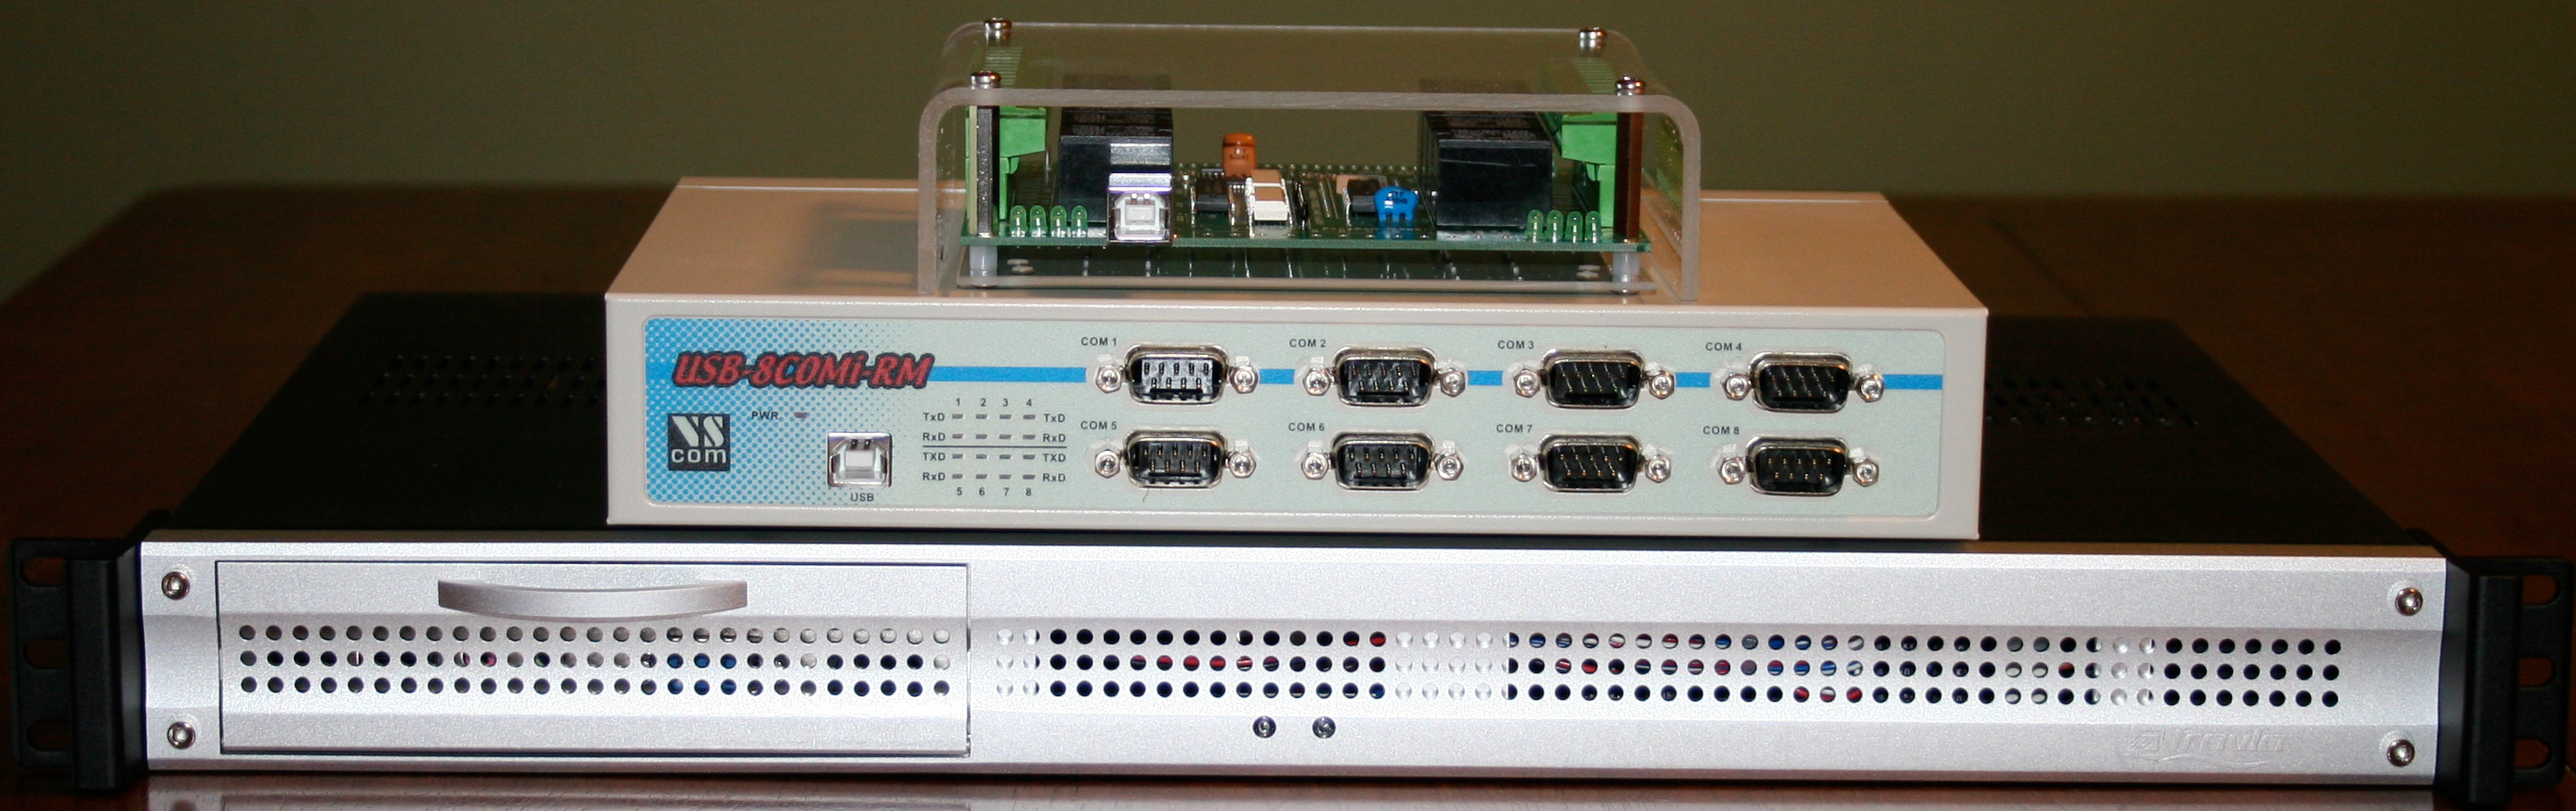 LSL LPN-SEC Standard Hardware with 8 Port Relay and 8 Port external serial interface